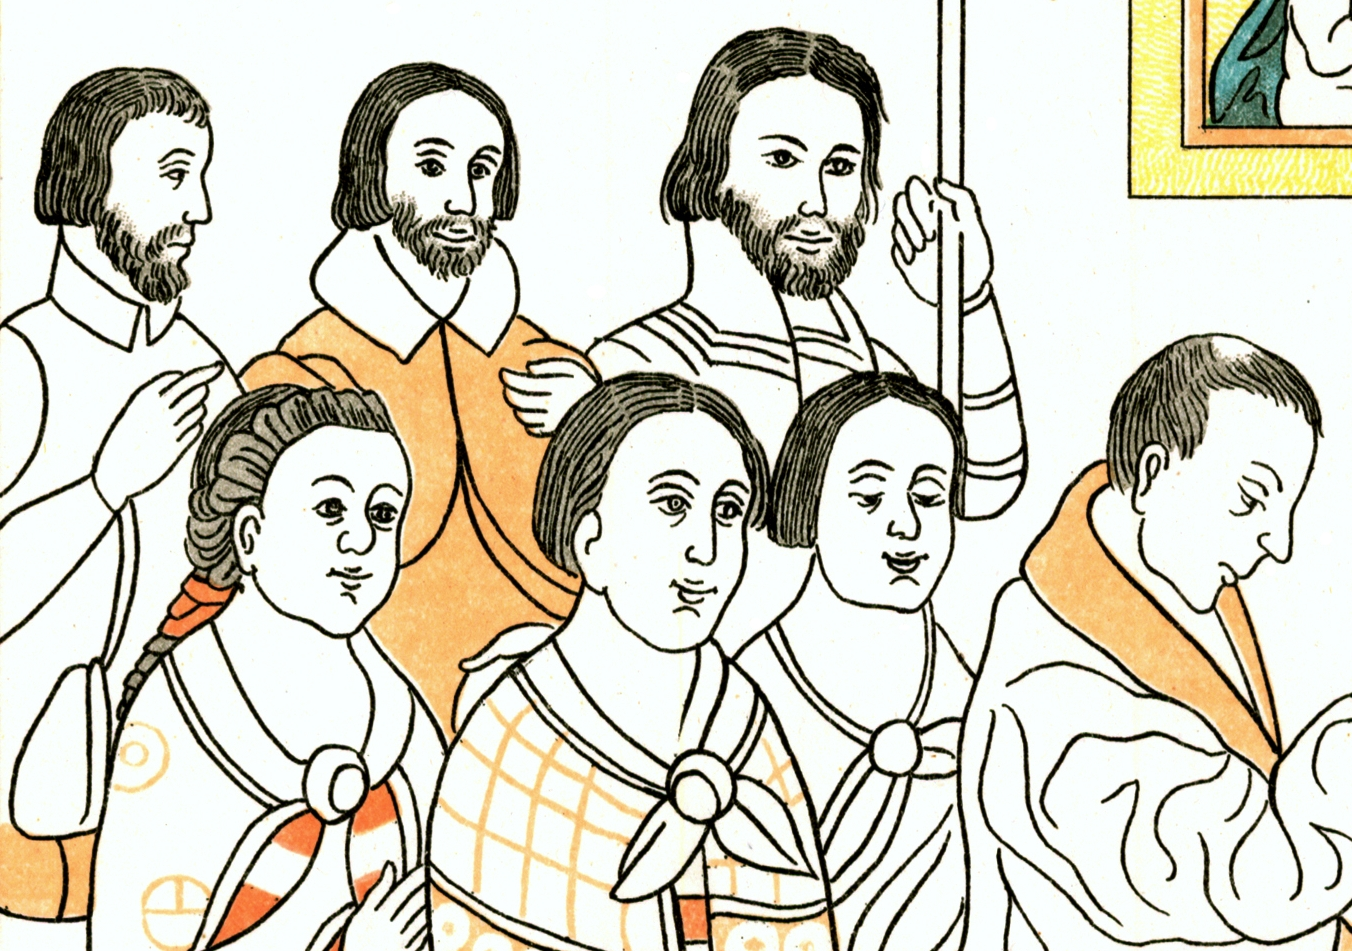 FIGURE 19. Tlaxcalan converts to Christianity wear their hair cut short in a European style, from Cell 8 of the Lienzo de Tlaxcala. Only one indigenous man (front row, to the left) still wears his long hair bound in cloth. His feathered headband may indicated that he is ethnically Otomi. In the background, the short European hairstyle is worn by bearded Europeans.